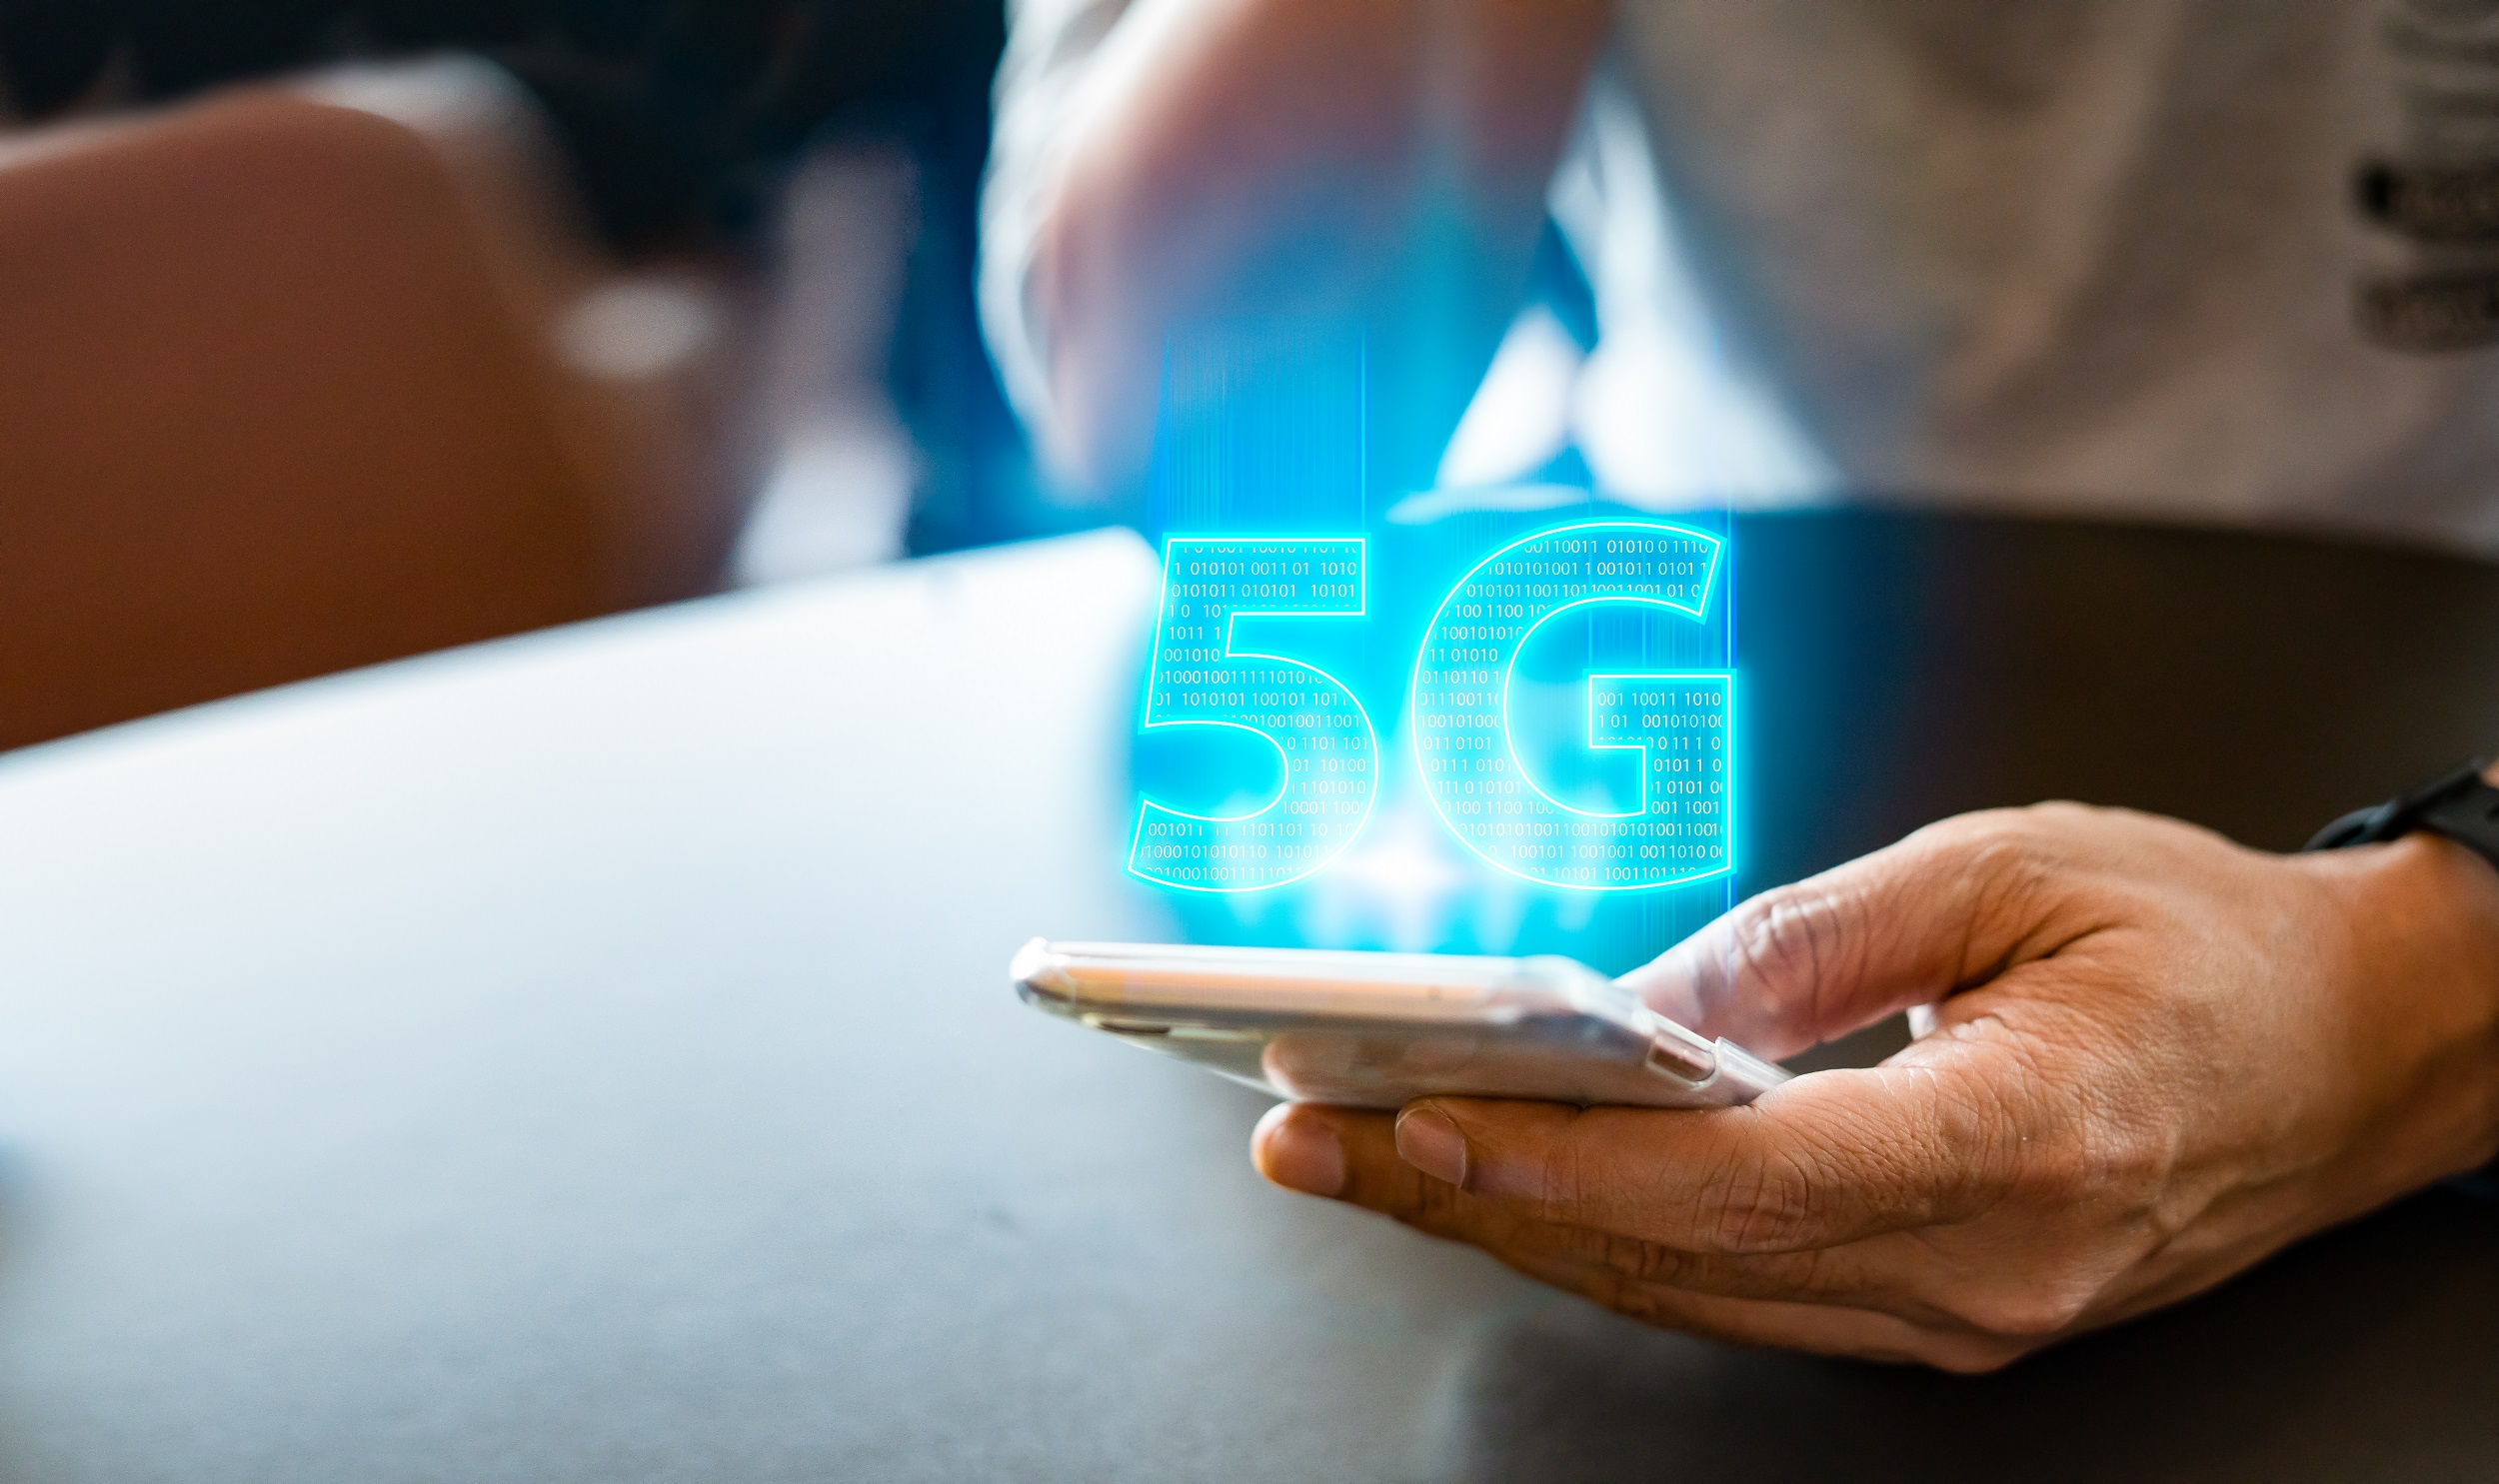 Why 2021 is FINALLY going to be the year of 5G